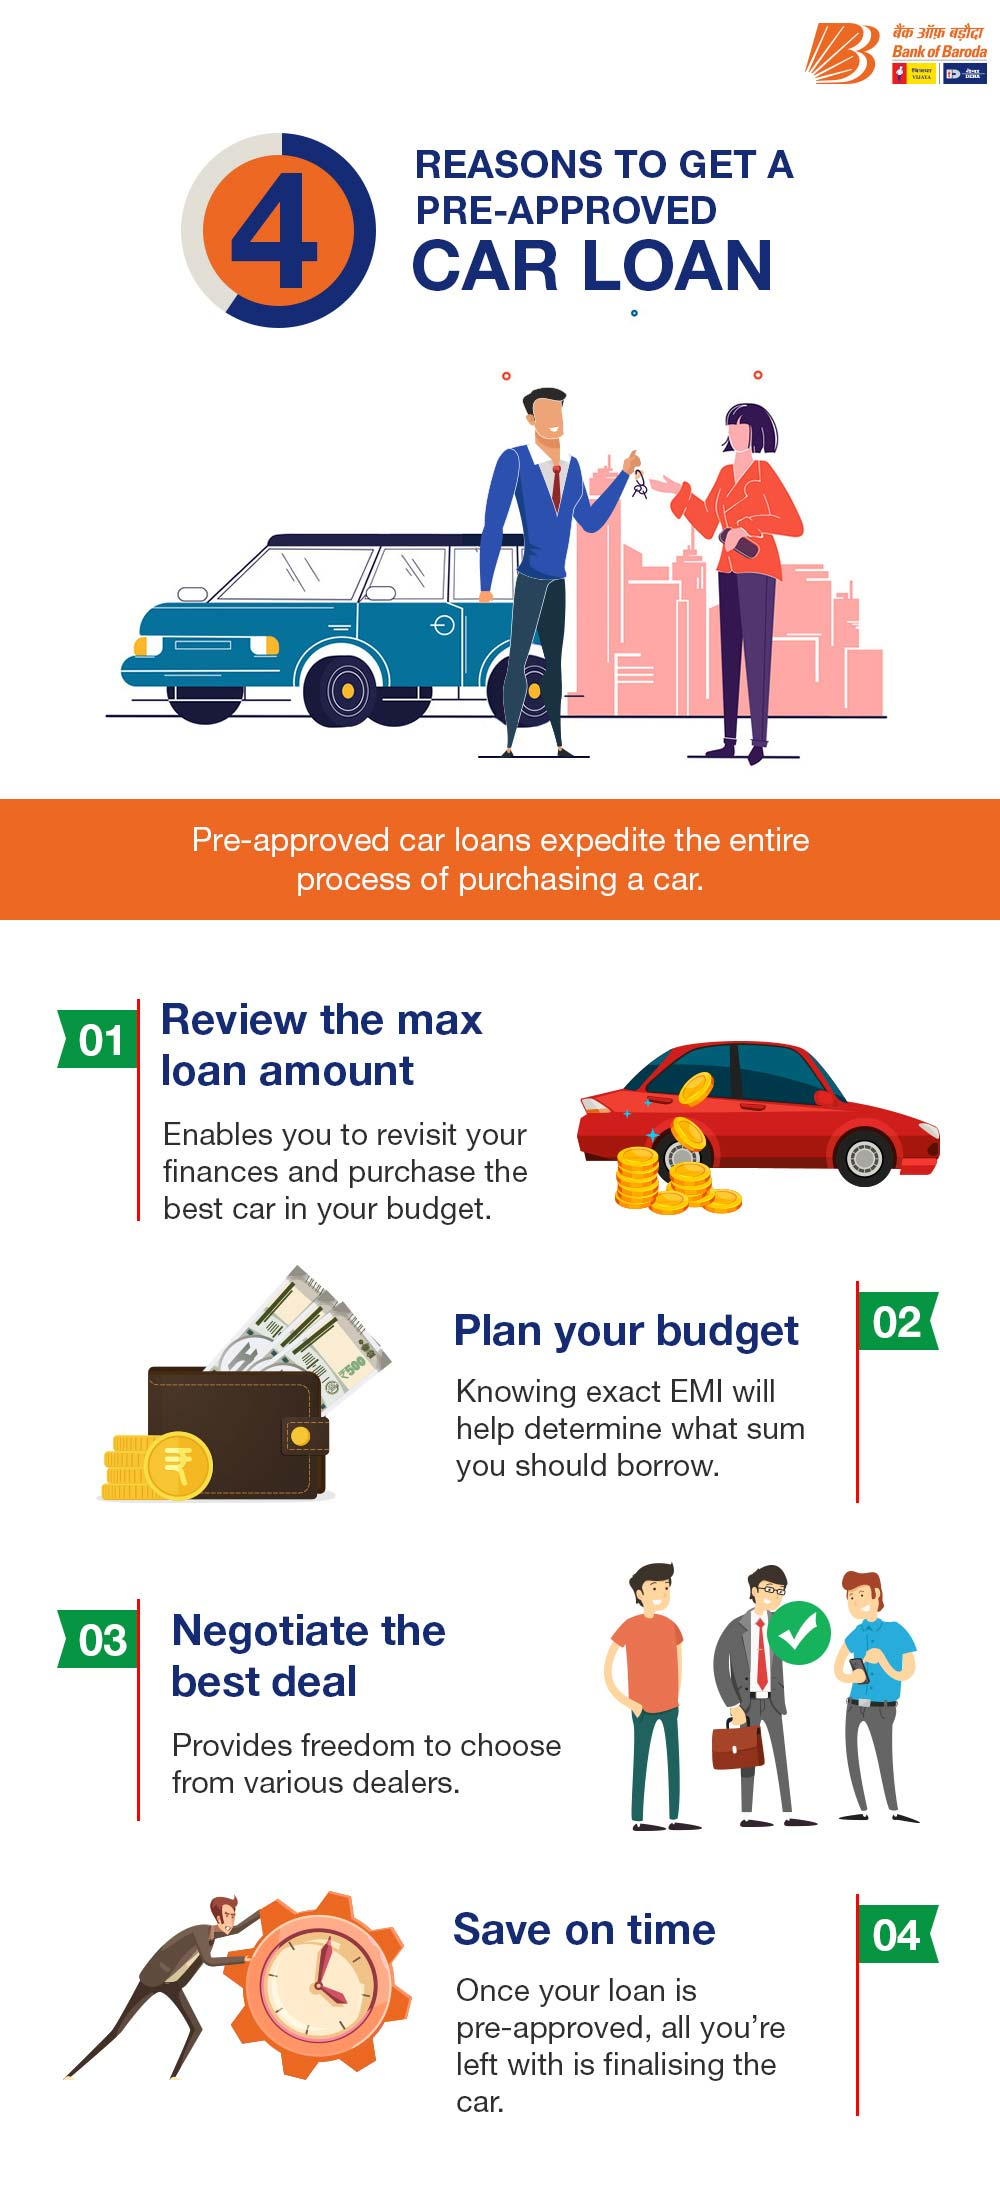 4 Reasons to Get a Pres-Approved Car Loan